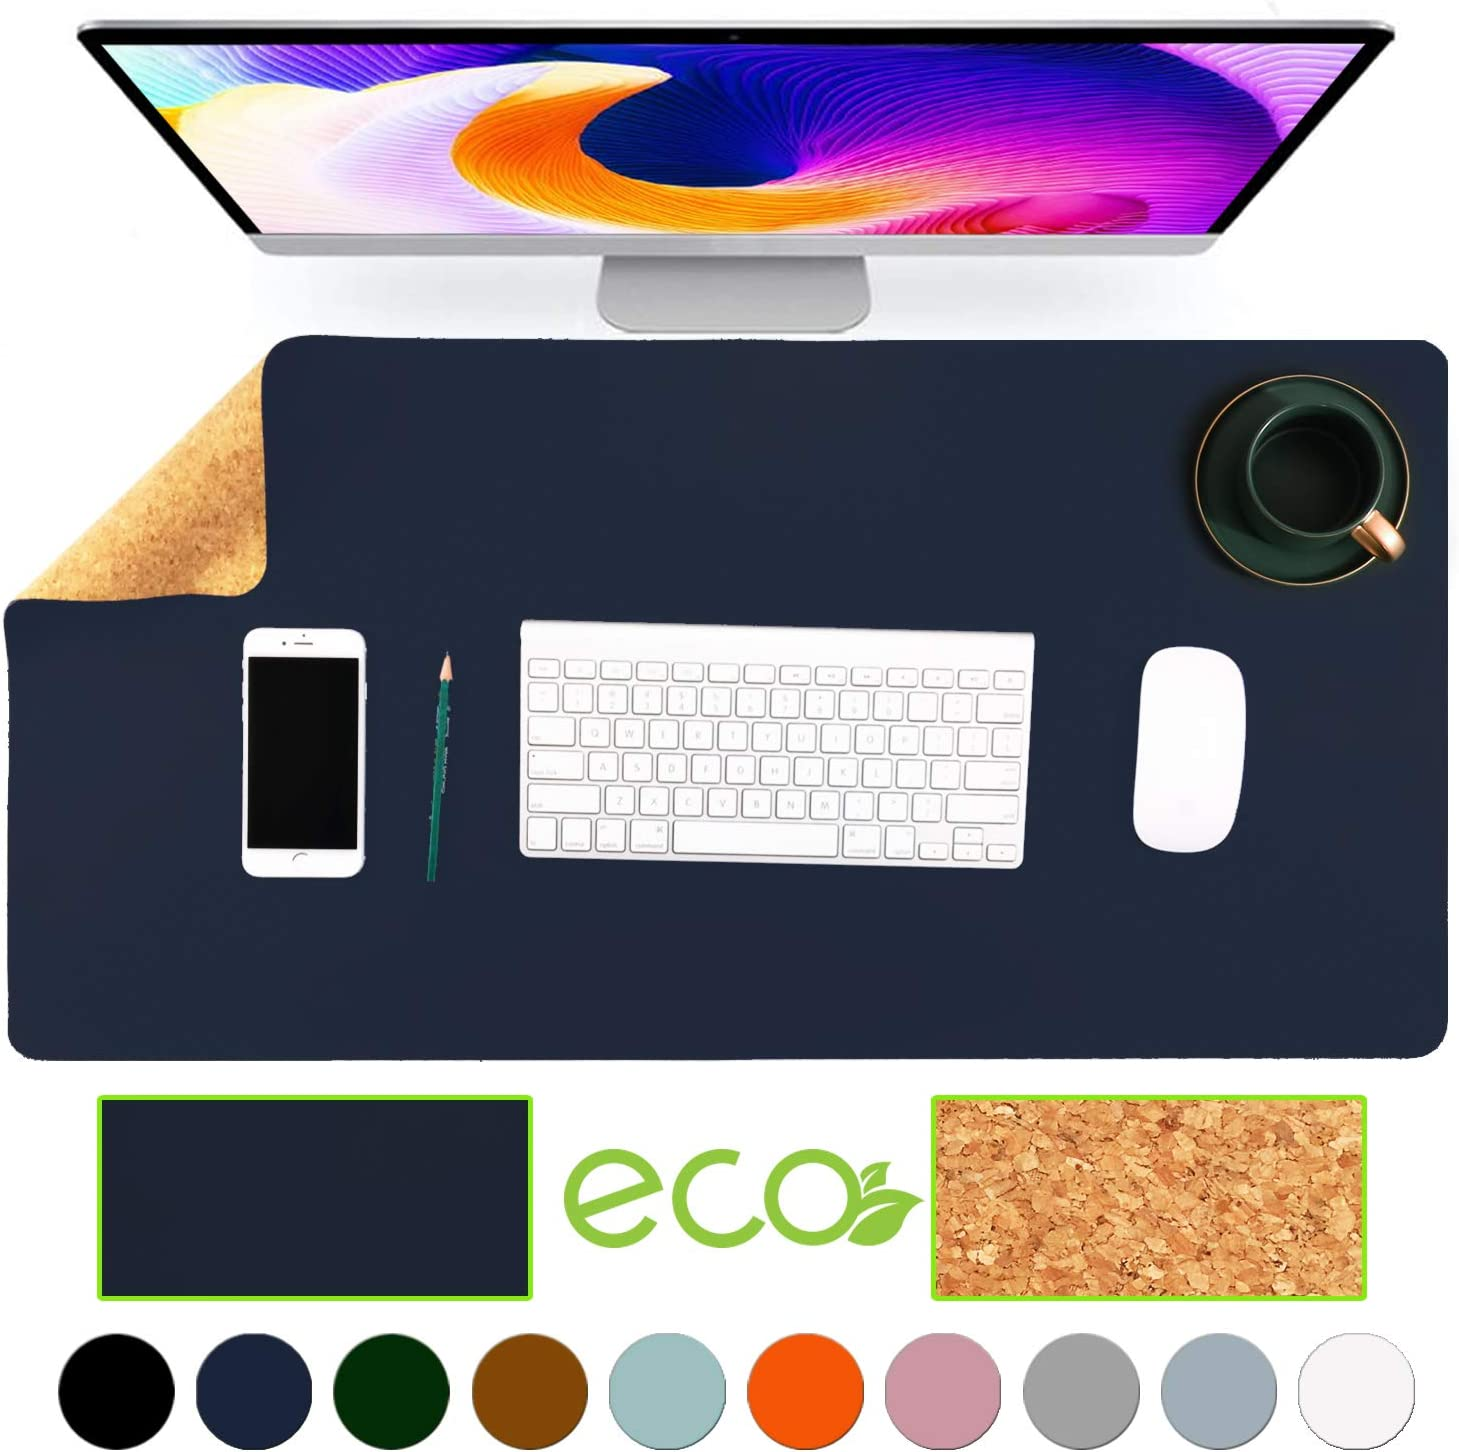 """Aothia Eco-Friendly Natural Cork & Leather Double-Sided Office Desk Mat Mouse Pad Smooth Surface Soft Easy Clean Waterproof PU Leather Desk Protector for Office/Home Gaming (Dark Blue,31.5"""" x 15.7"""")"""